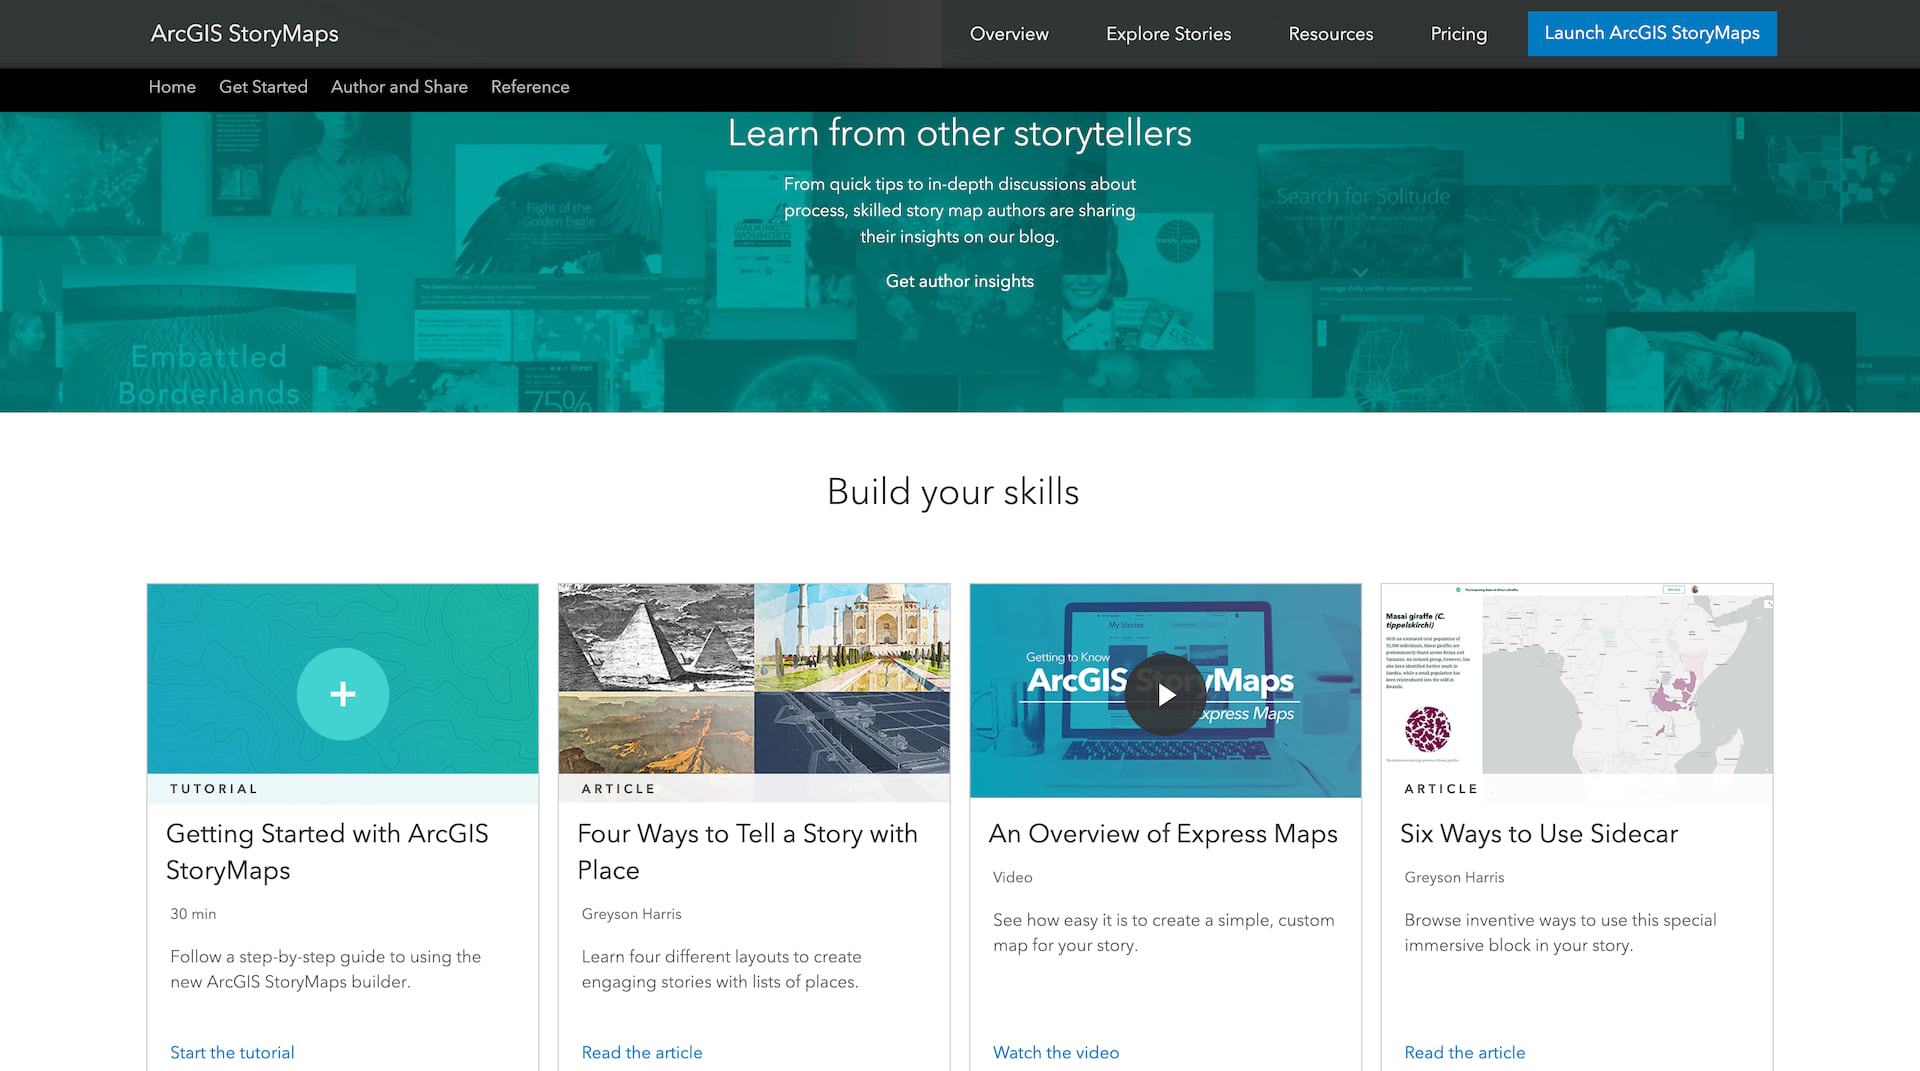 The new ArcGIS StoryMaps has arrived, marking a new era in digital storytelling